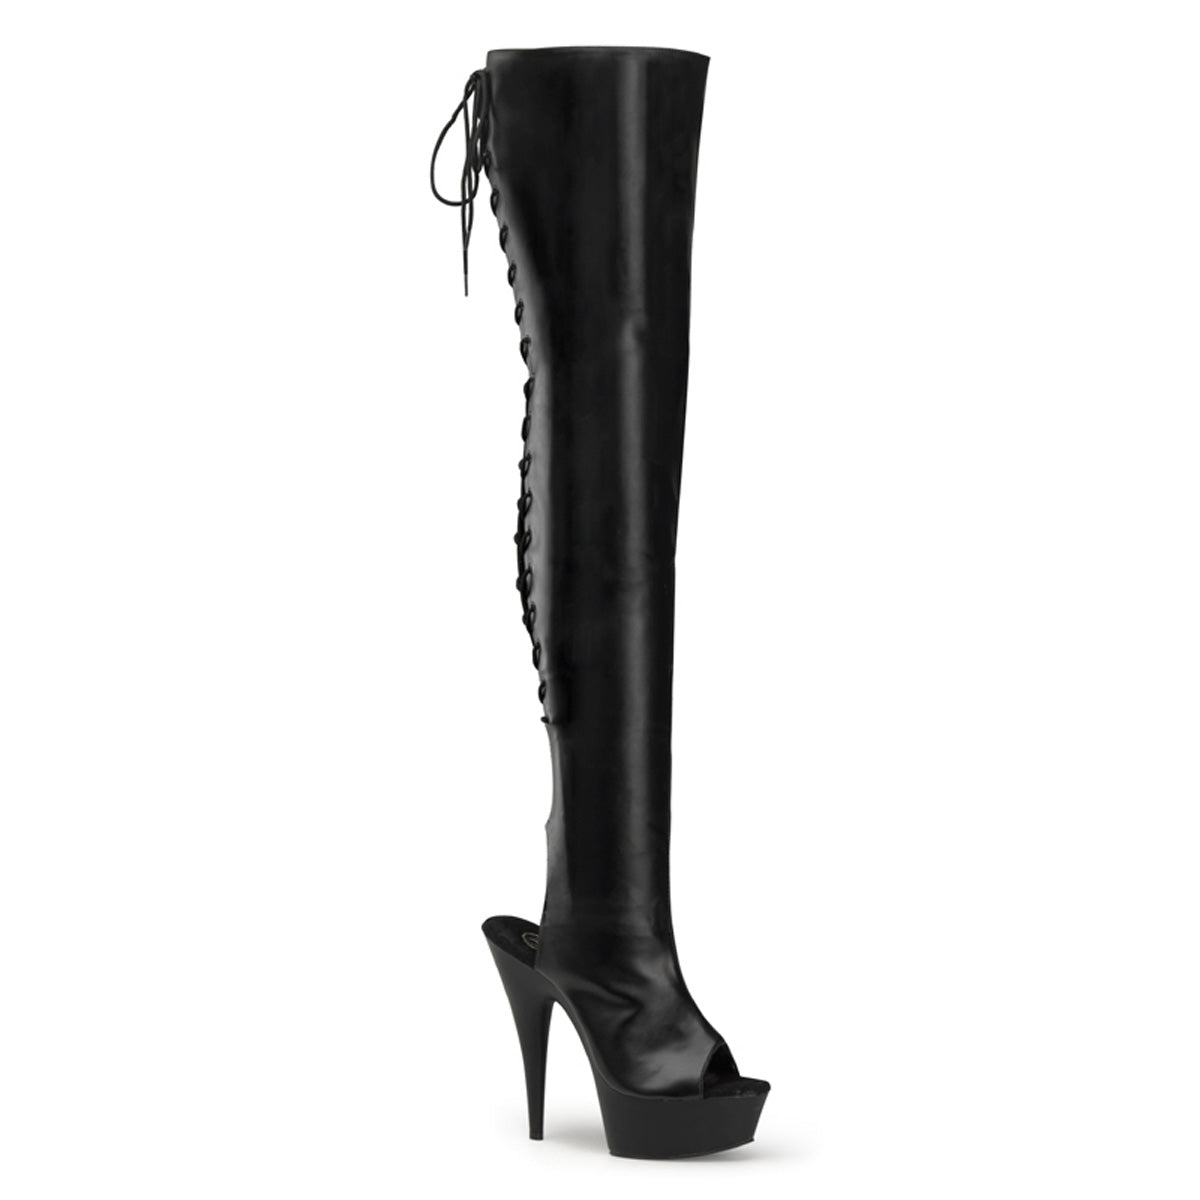 "6"" Heel, 1 3/4"" PF Thigh High Open Heel/Toe Lace Back Boot"